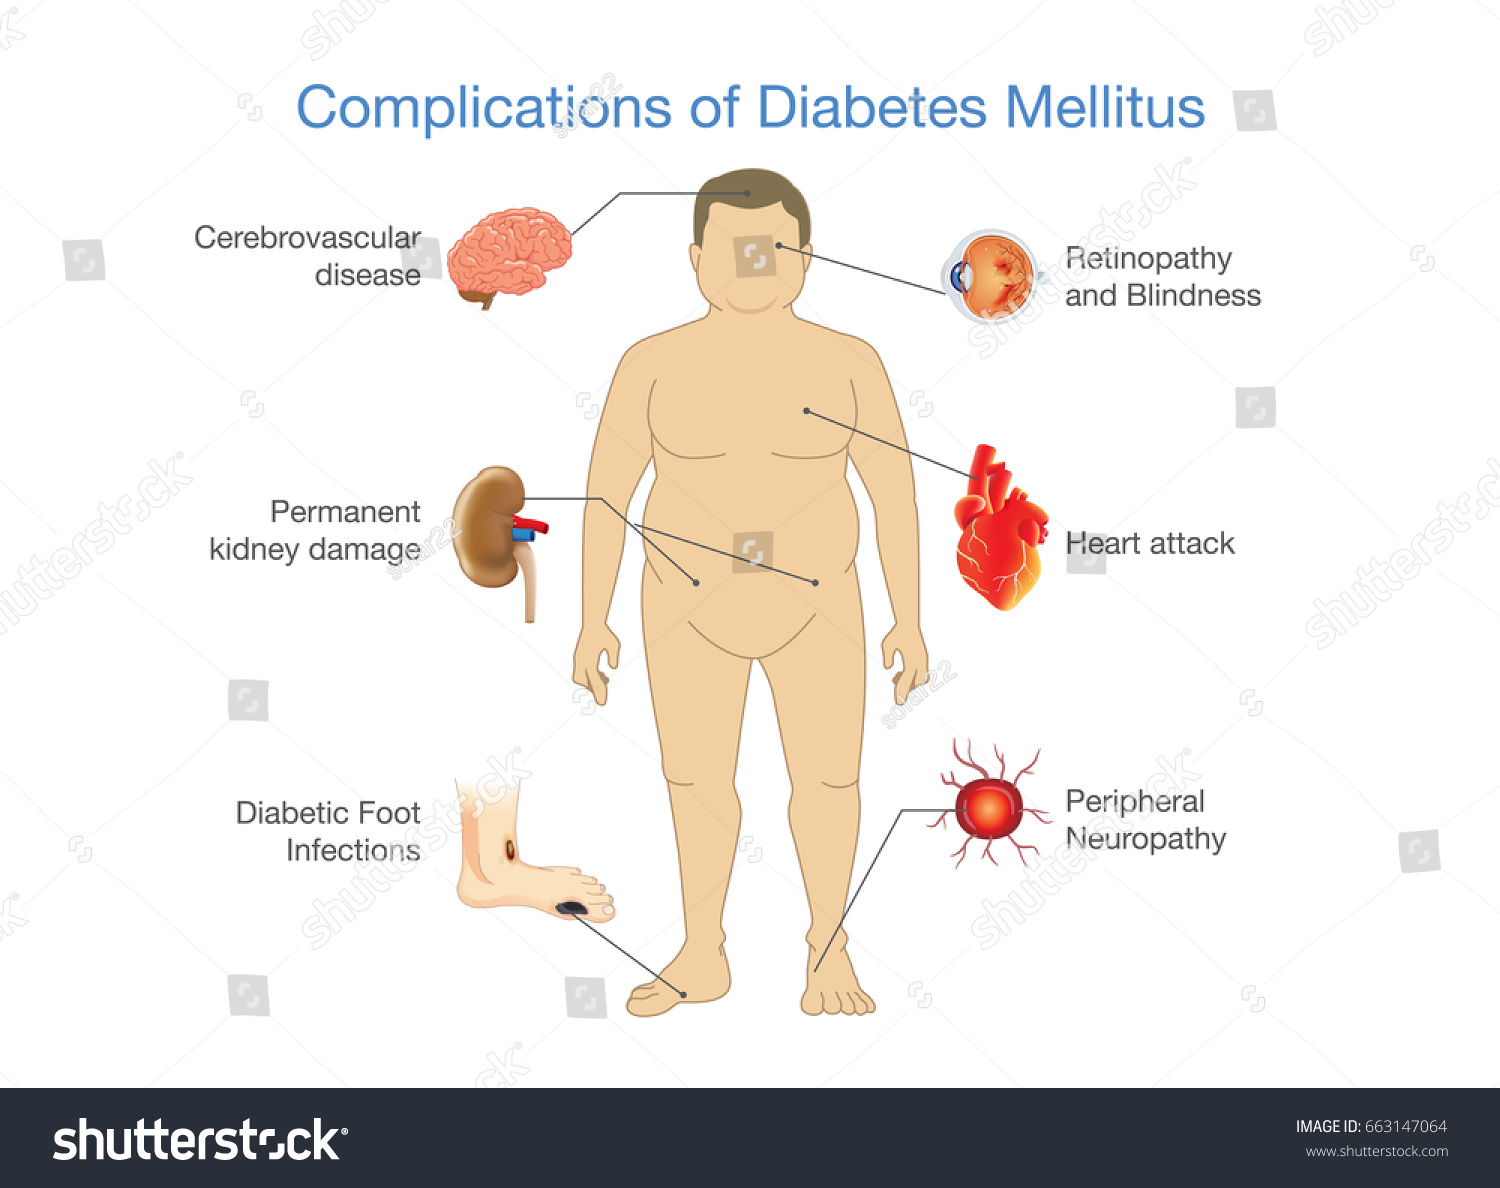 Belly Fat Diagram Starting Know About Wiring Exiss Trailer Complications Diabetes Mellitus People Illustration